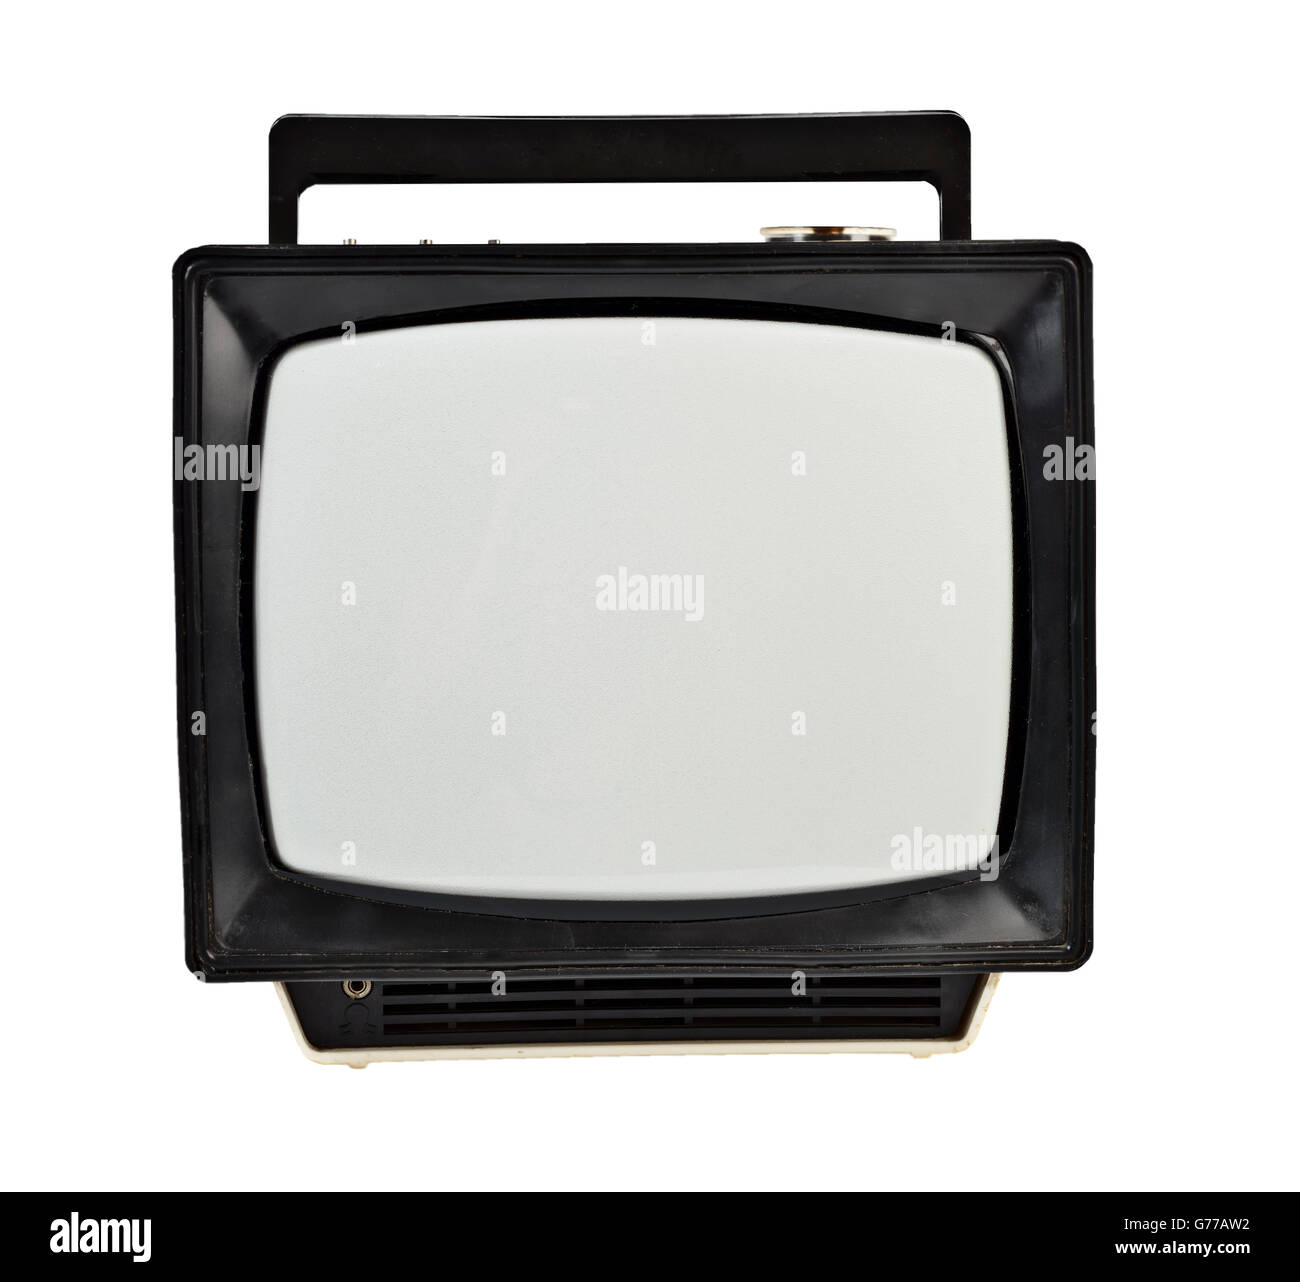 Vintage analog portable TV isolated on white - Stock Image